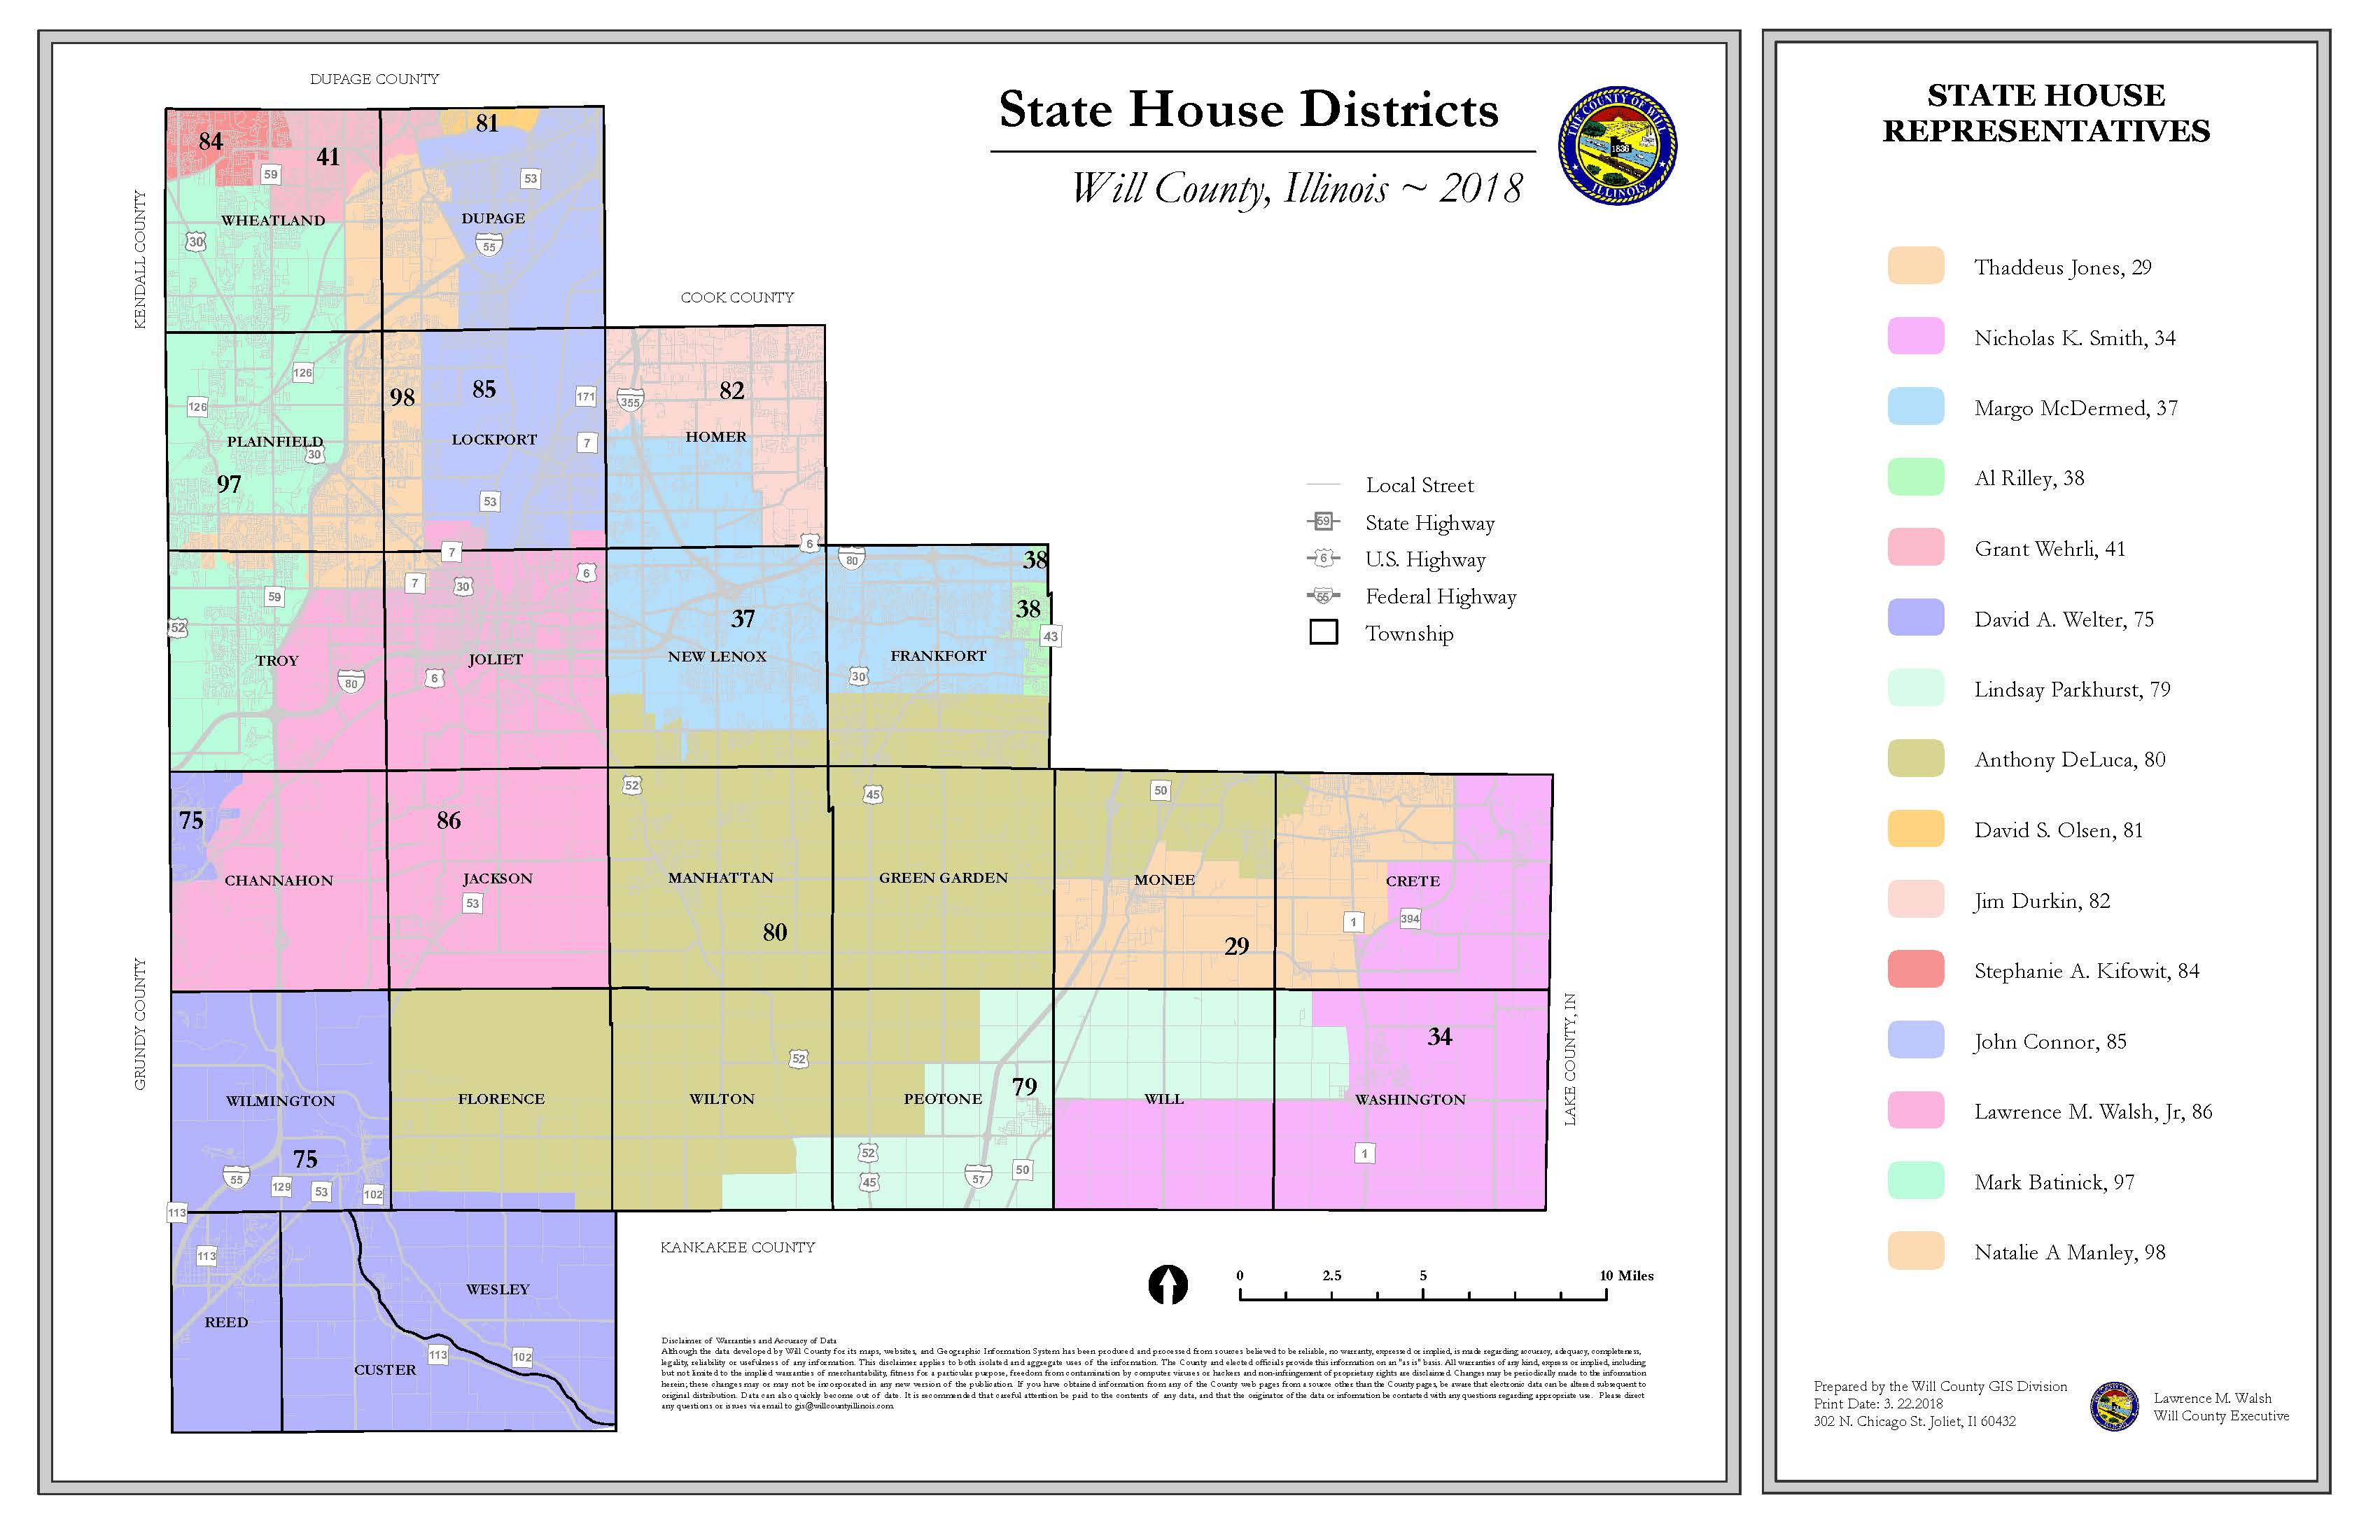 Will County Illinois State House District map 11x17